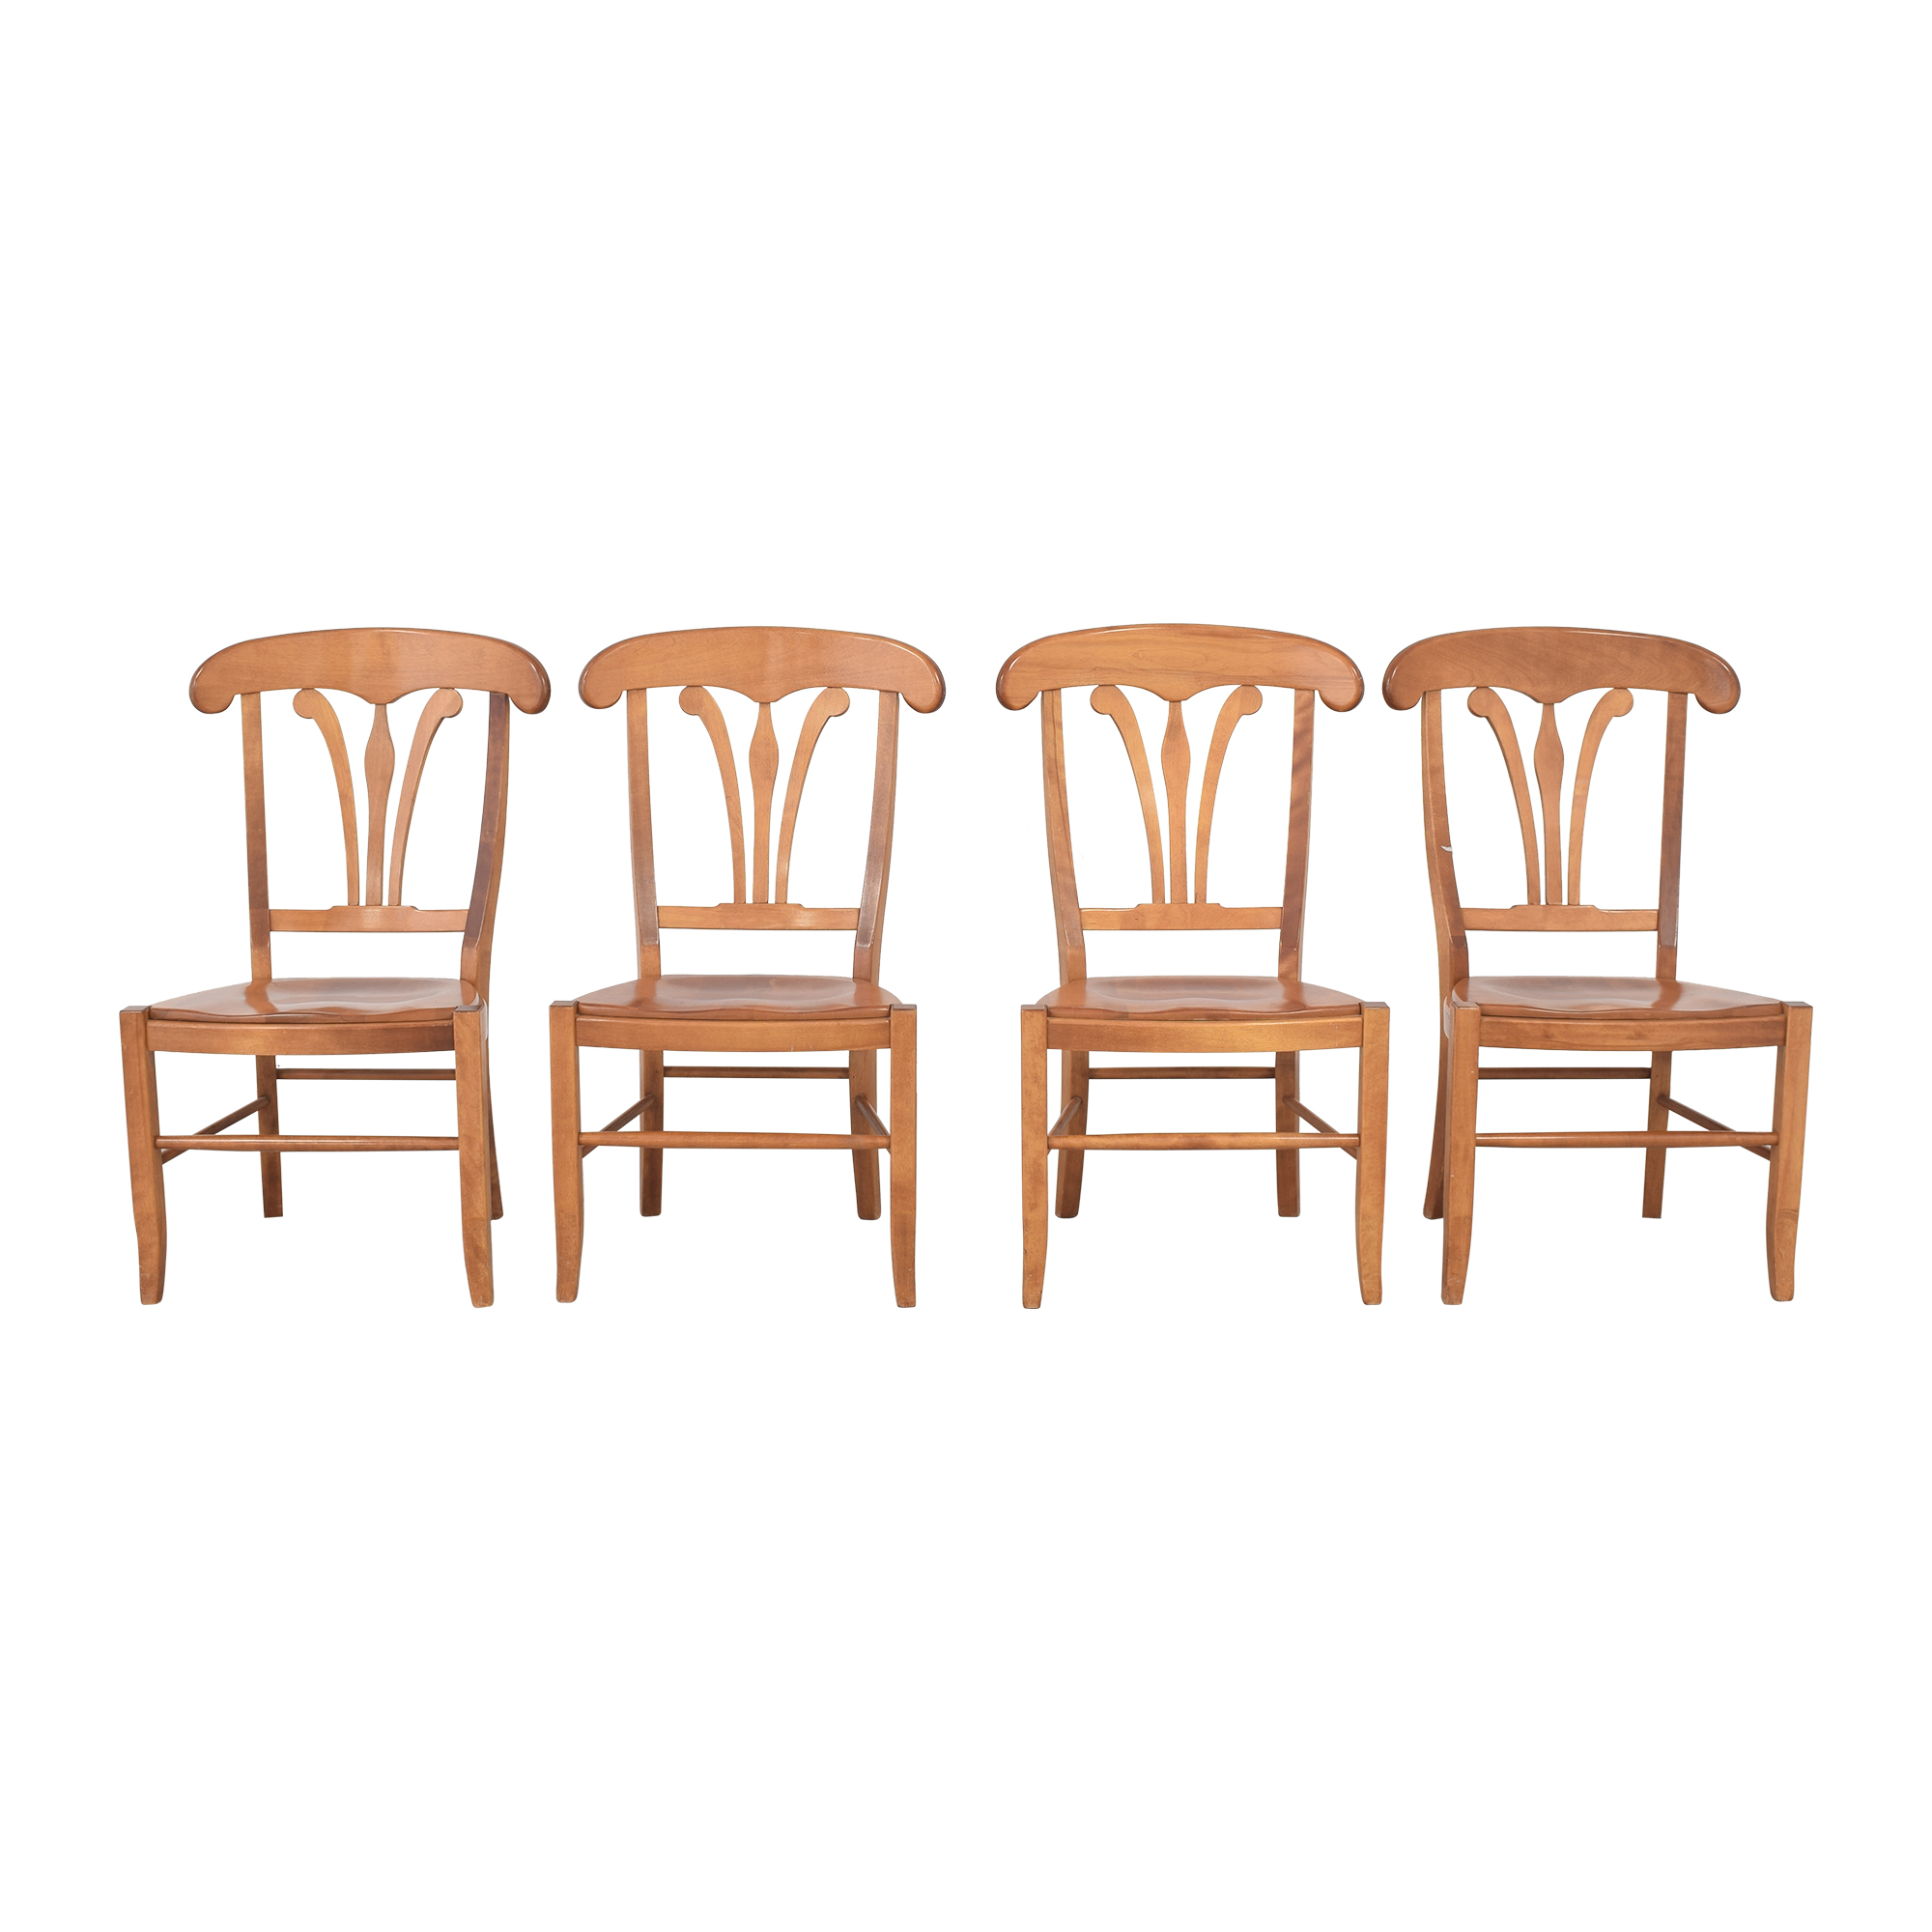 Nichols & Stone Nichols & Stone Country Manor Dining Chairs discount